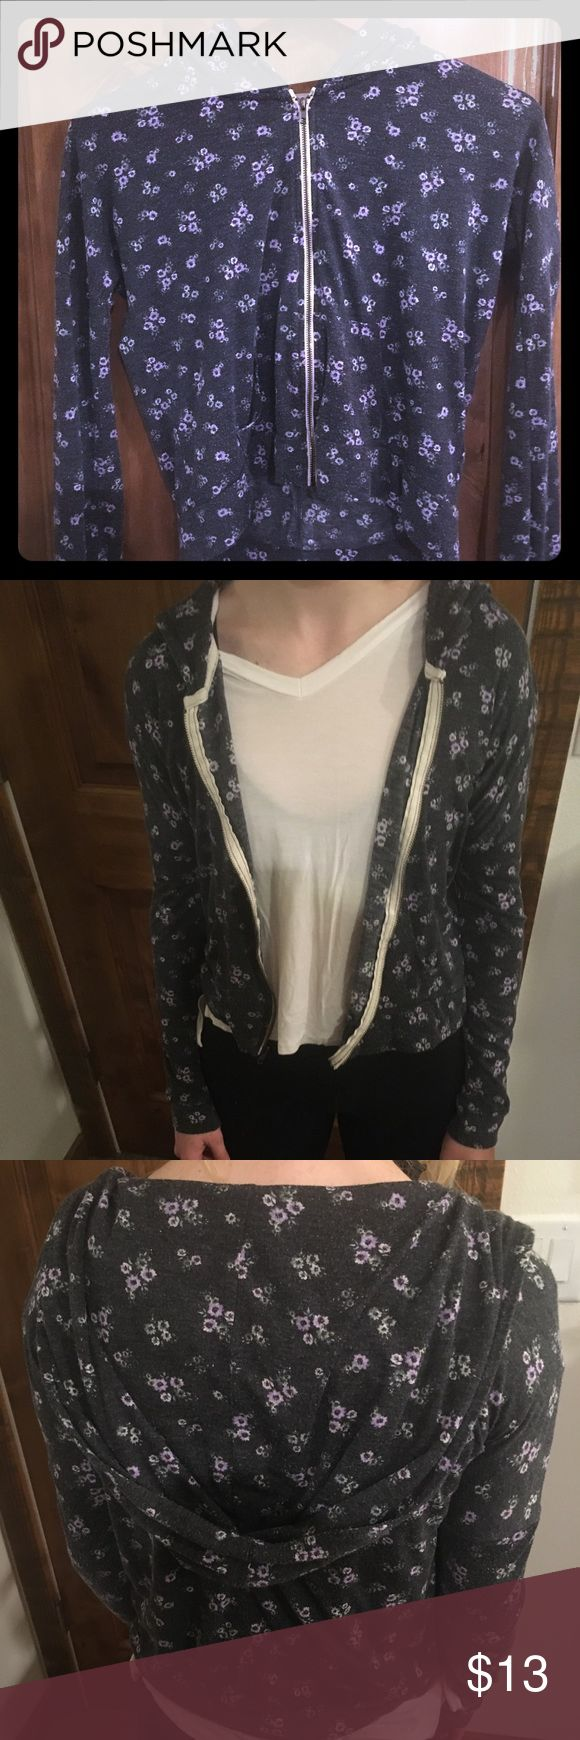 Abercrombie kids floral zip up thin hoodie. Cute zip up with very slight wear on the fabric. Could fit an XS women size but it is a kids medium. Zipper is fully functional. abercrombie kids Shirts & Tops Sweatshirts & Hoodies